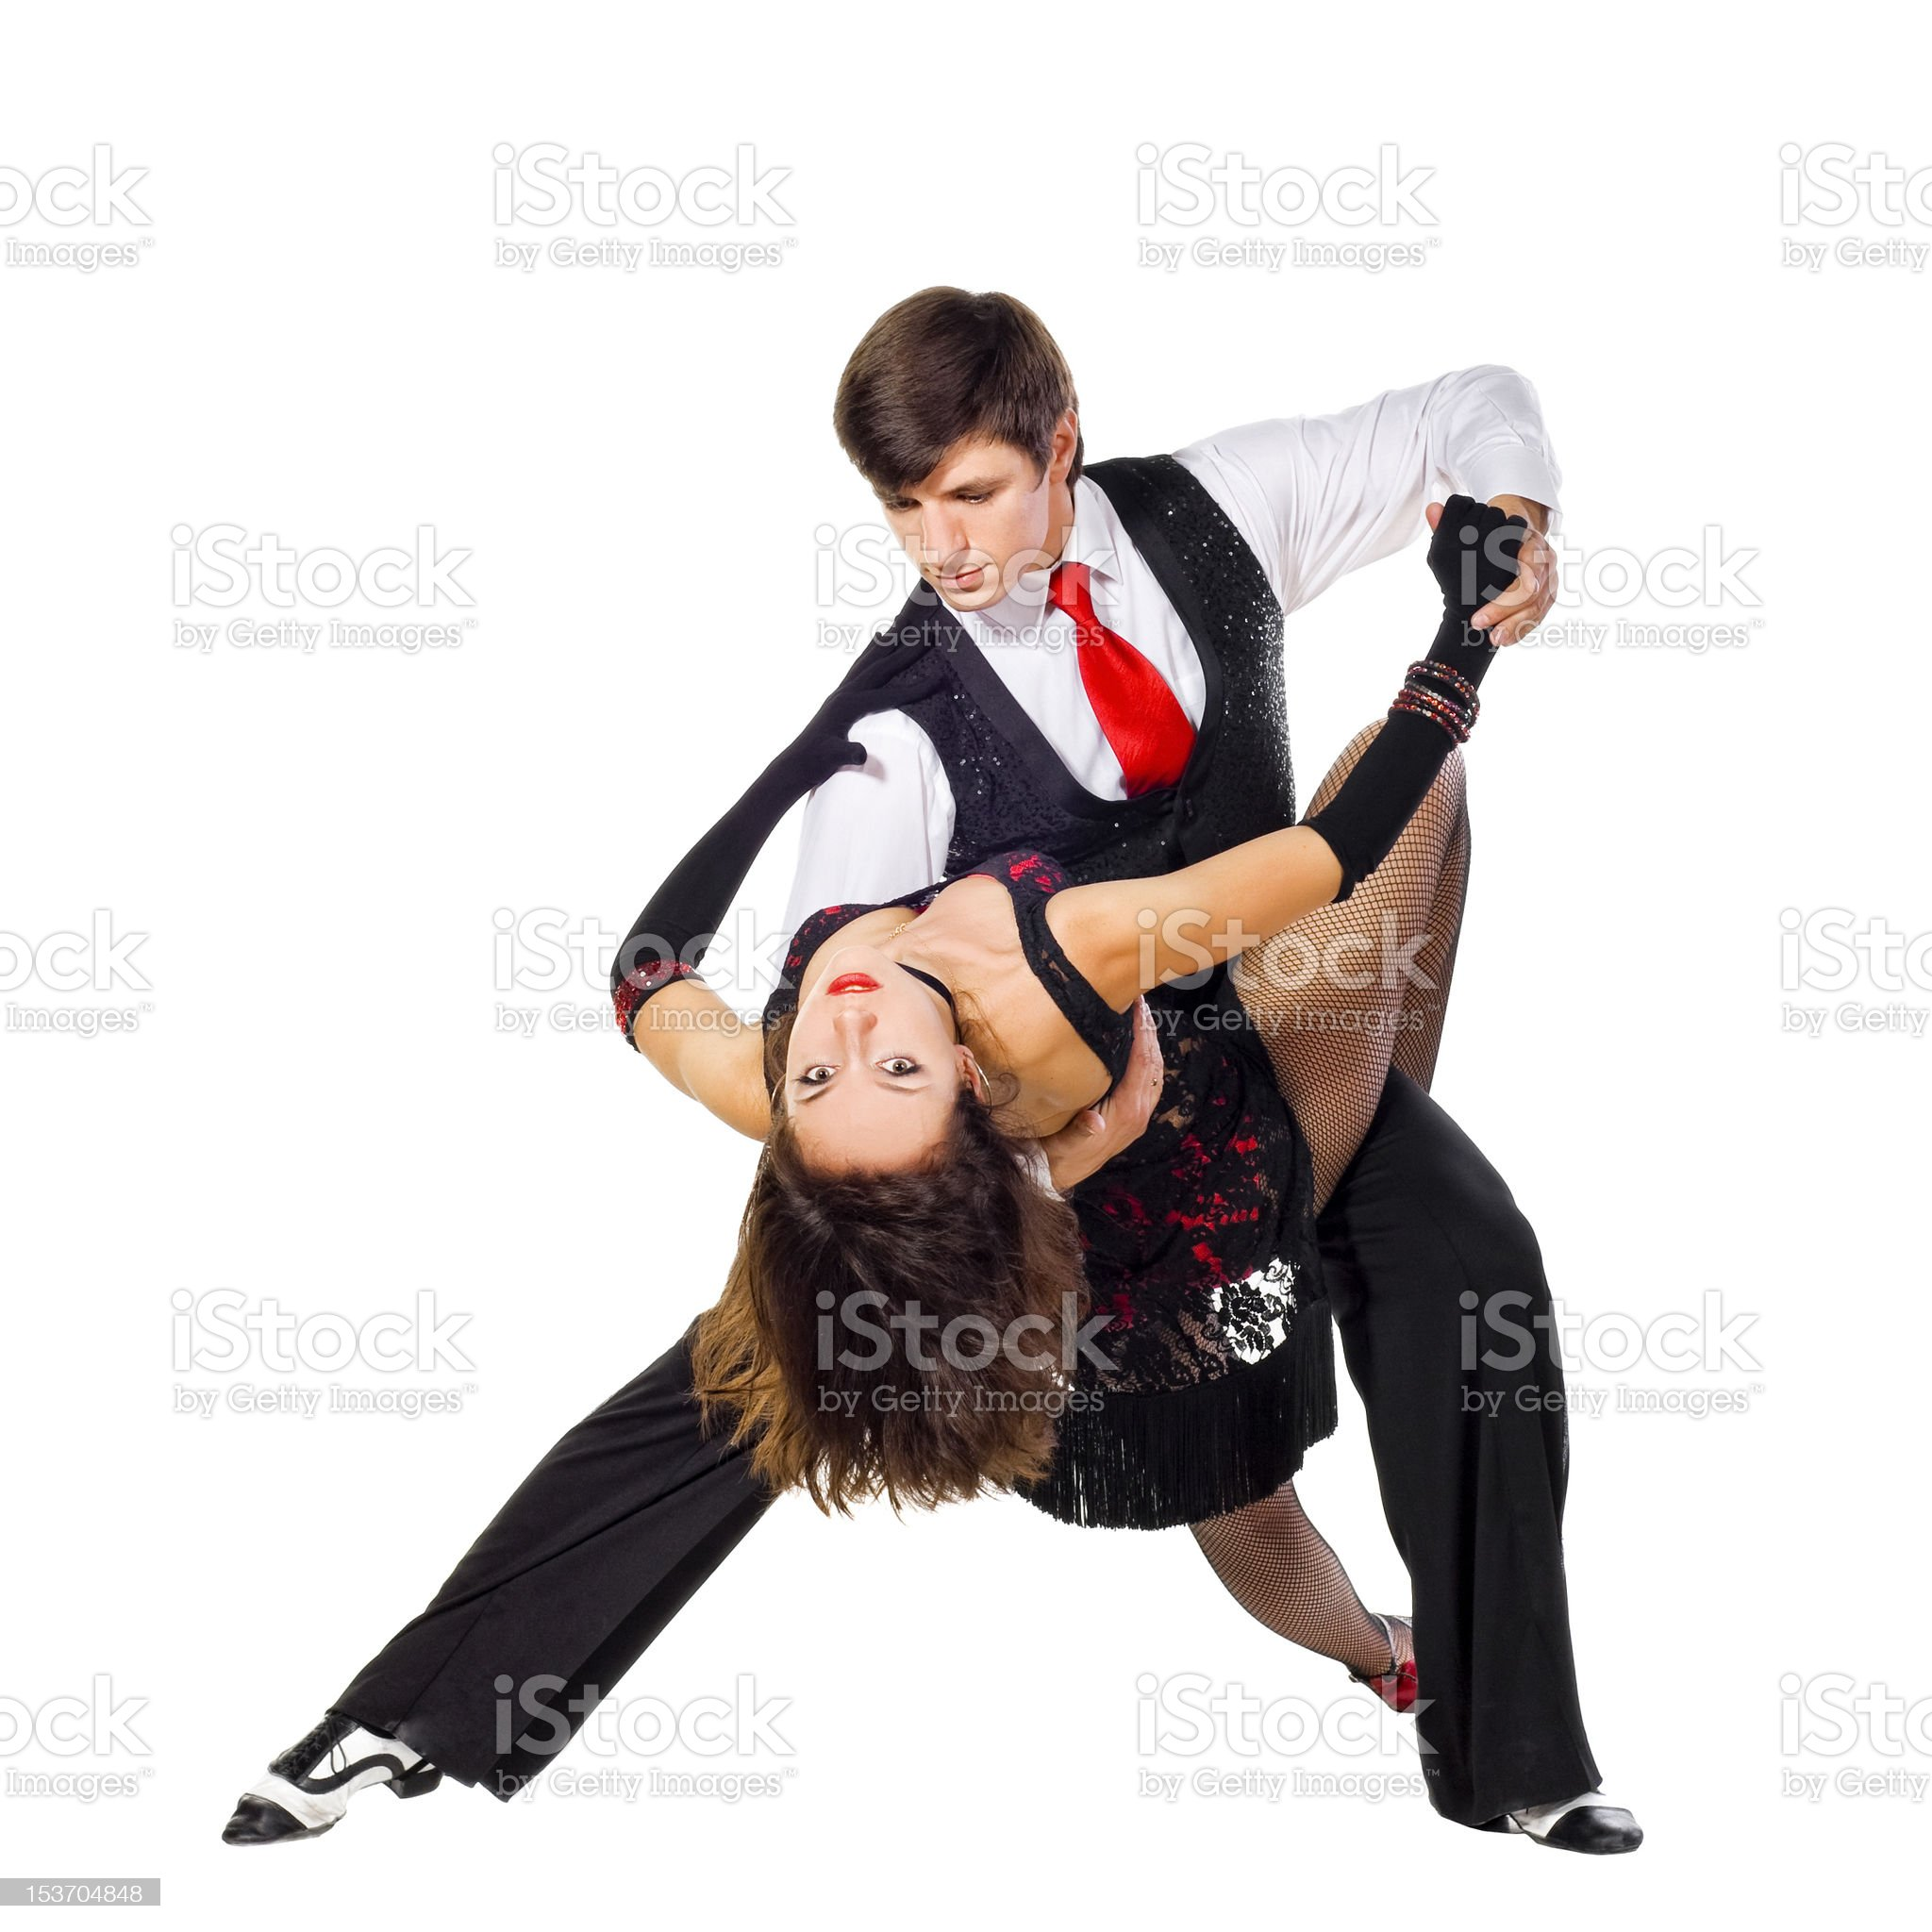 Two Tango dancers in action royalty-free stock photo